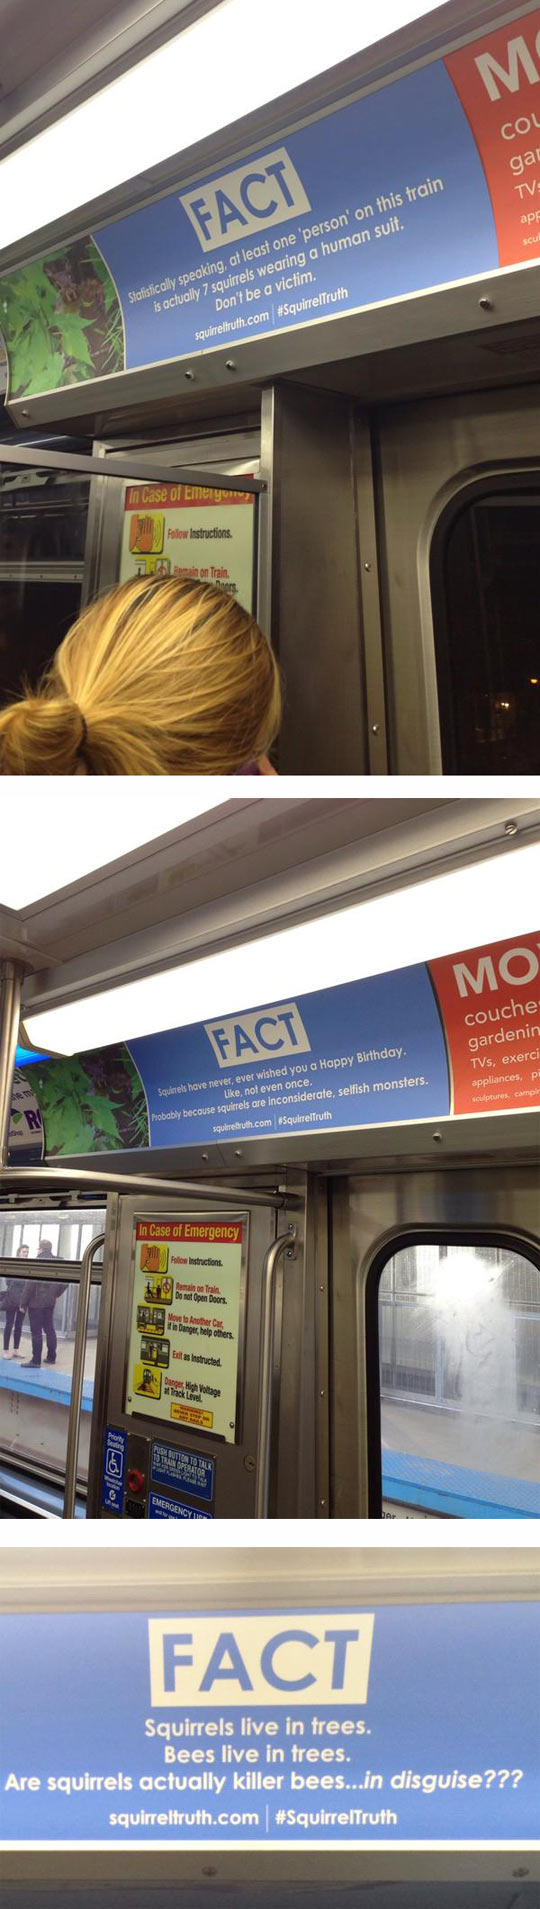 Random Squirrel Facts On The Subway